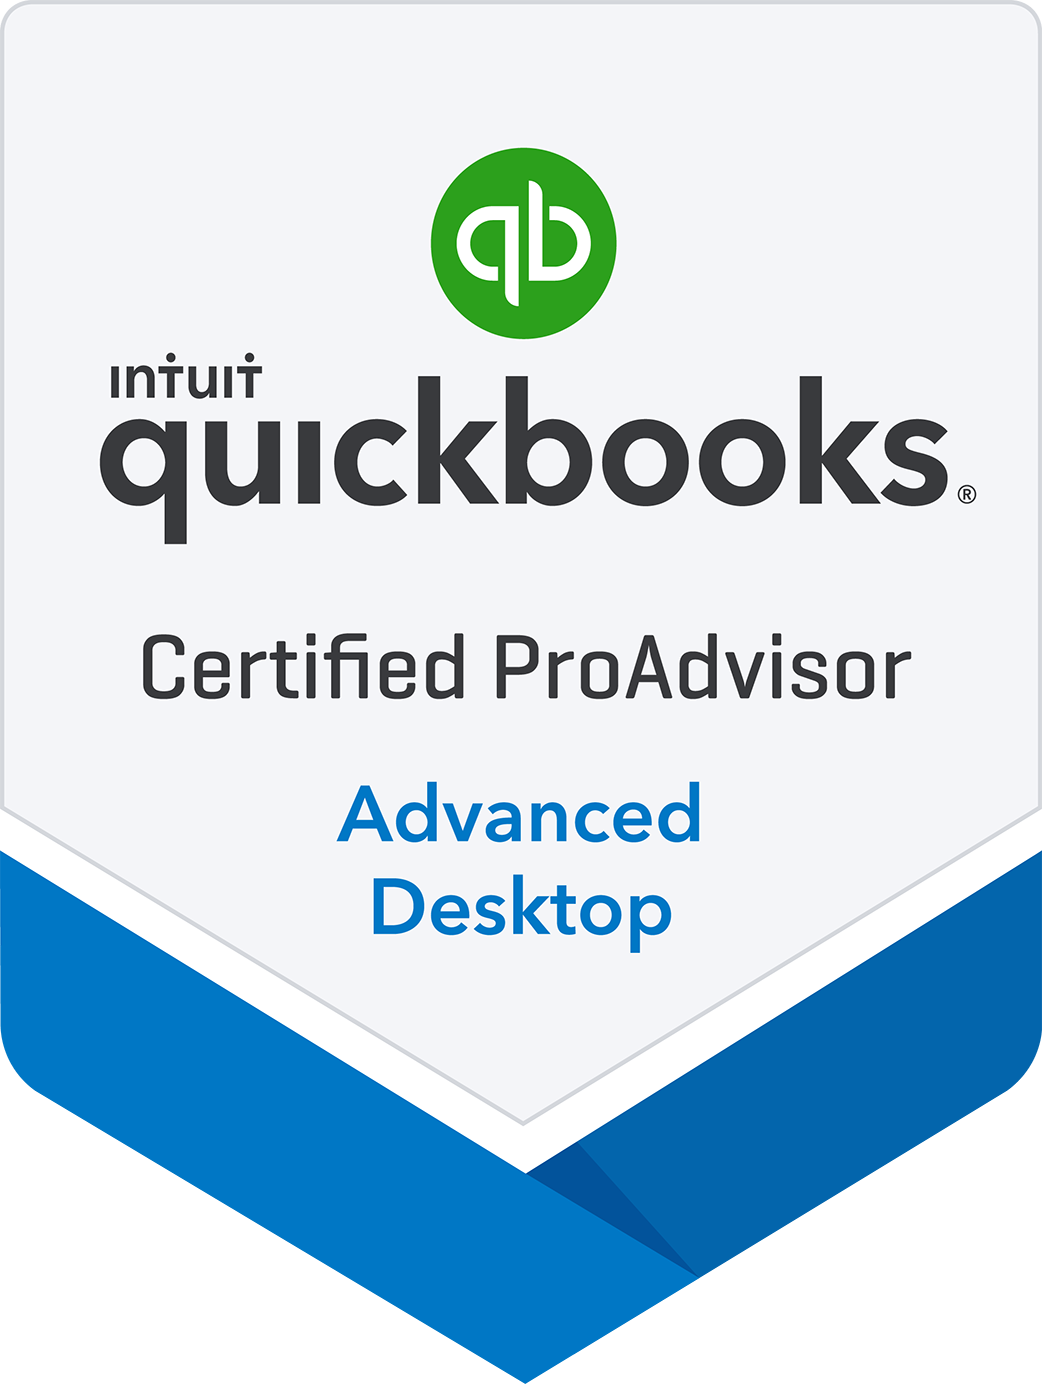 QuickBooks Certified ProAdvisor - QuickBooks Desktop Advanced Certification